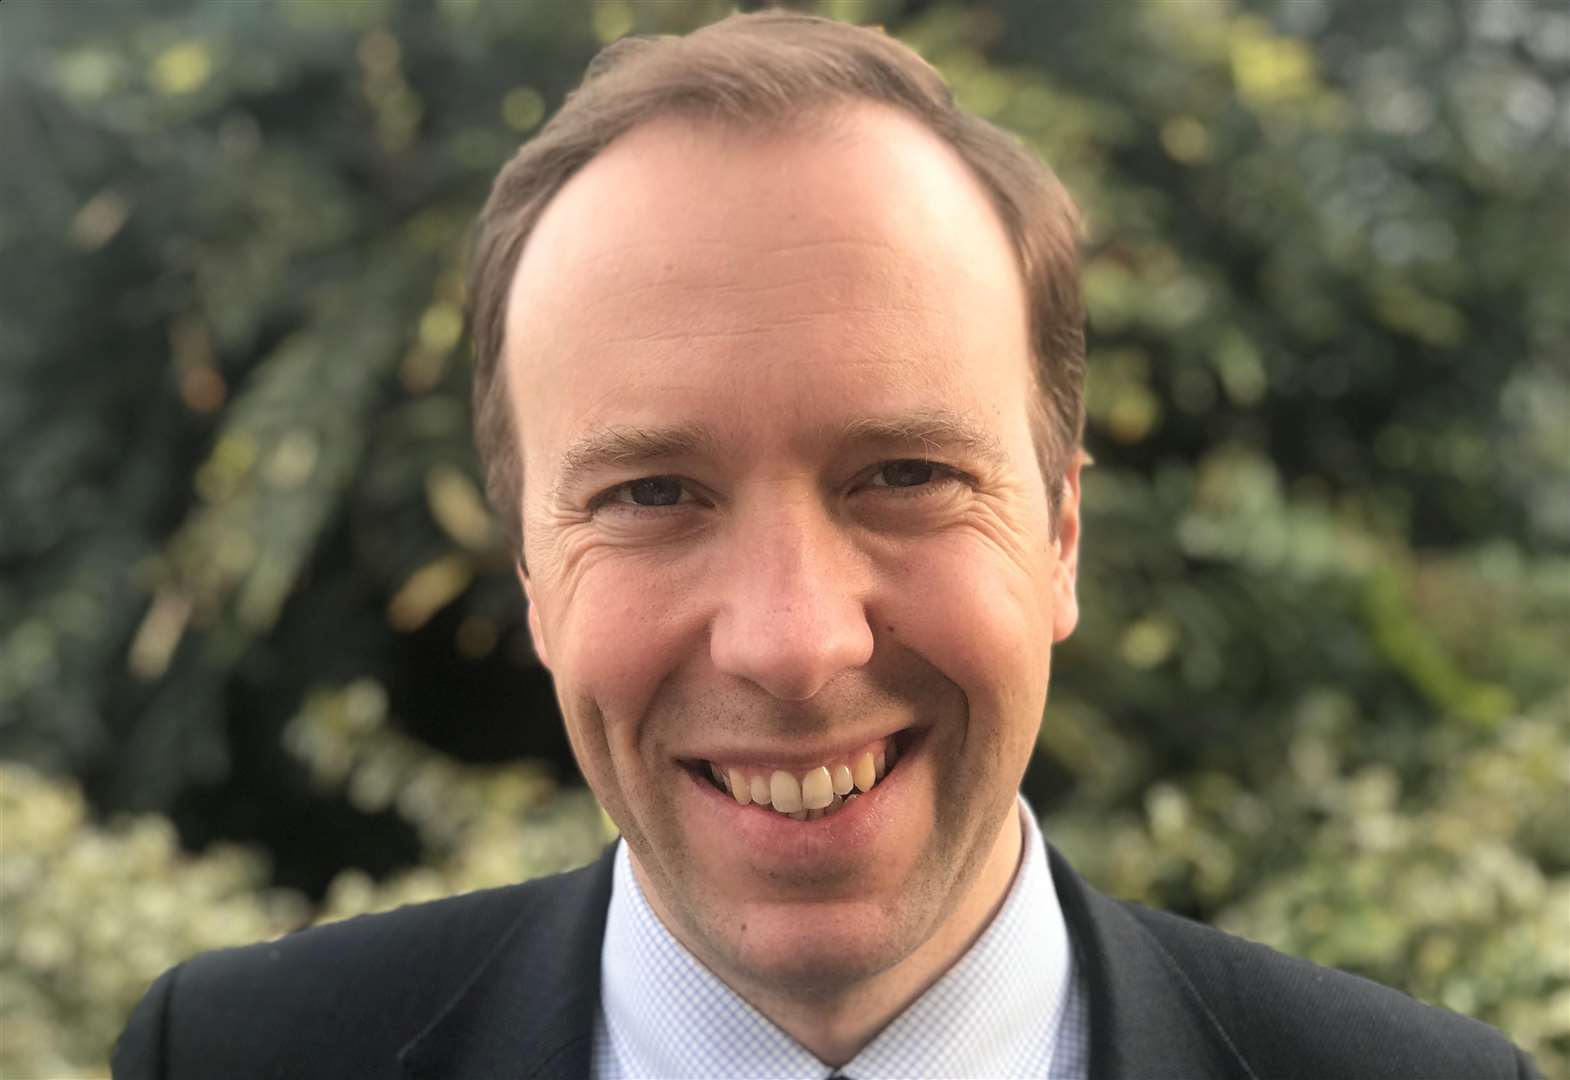 West Suffolk MP Matt Hancock quits race to be Prime Minister